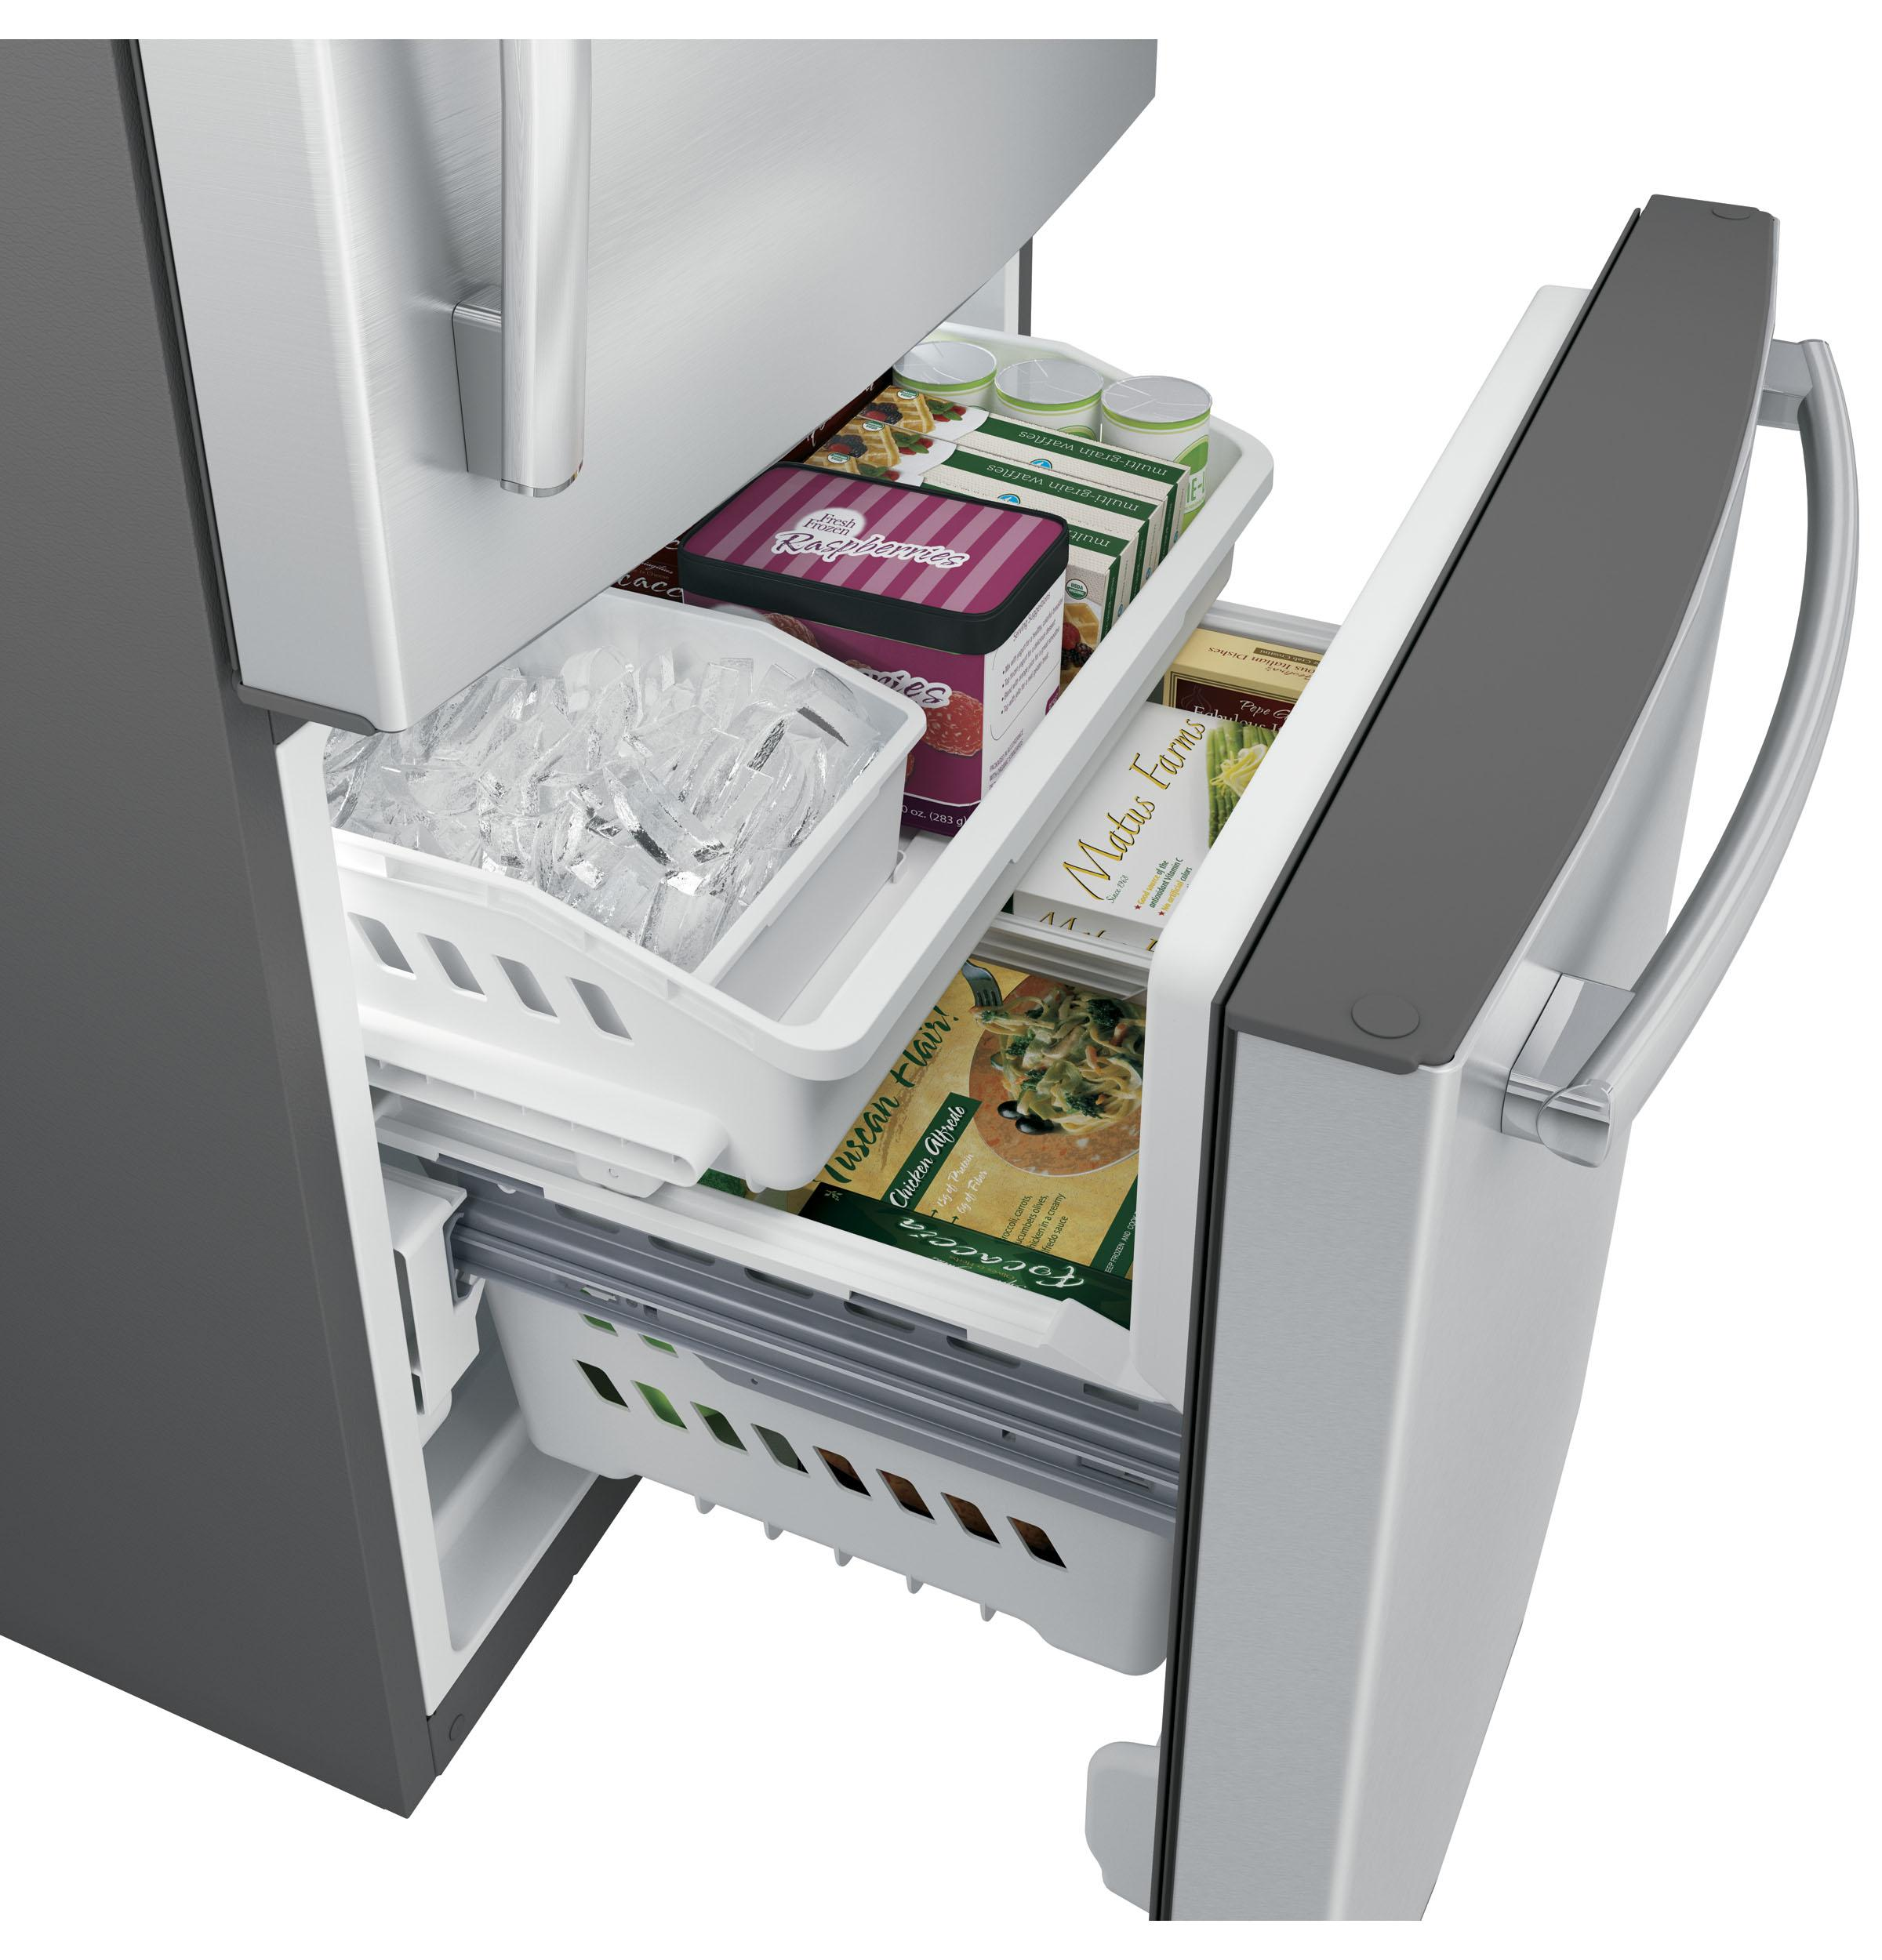 side clothes parts freezer refrigerator organizer sub glamorous of kenmore drawer drawers by model decent zero